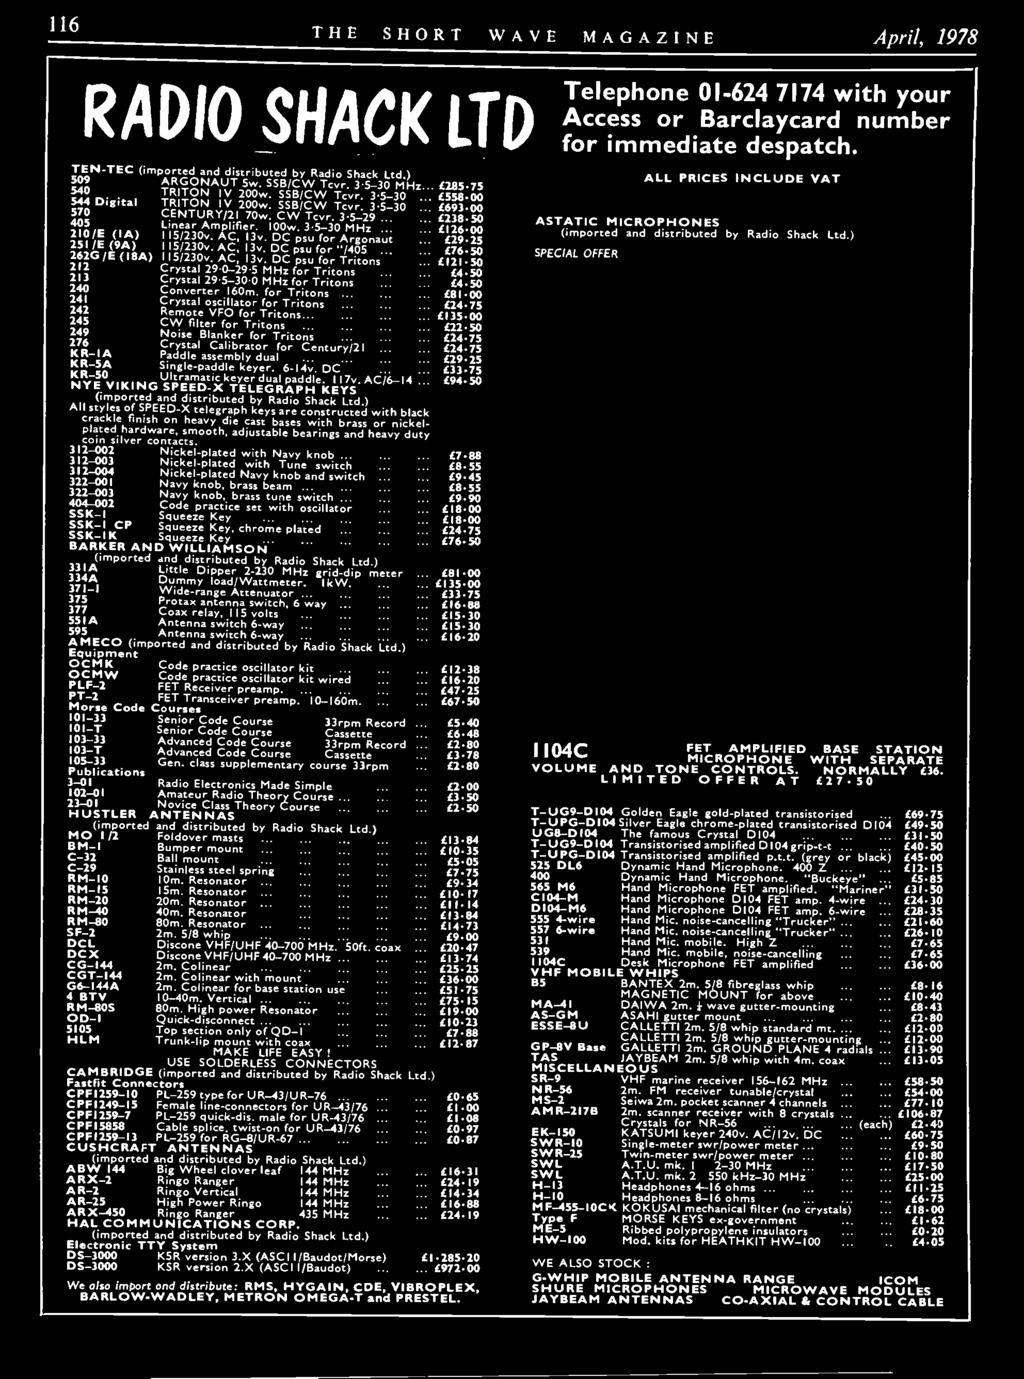 Vol Xxxvi April 1978 Number 2 Pdf Fet Preamp With Tone Control By 2n3819 Dc Psu For Argonaut 251 E 9a L2925